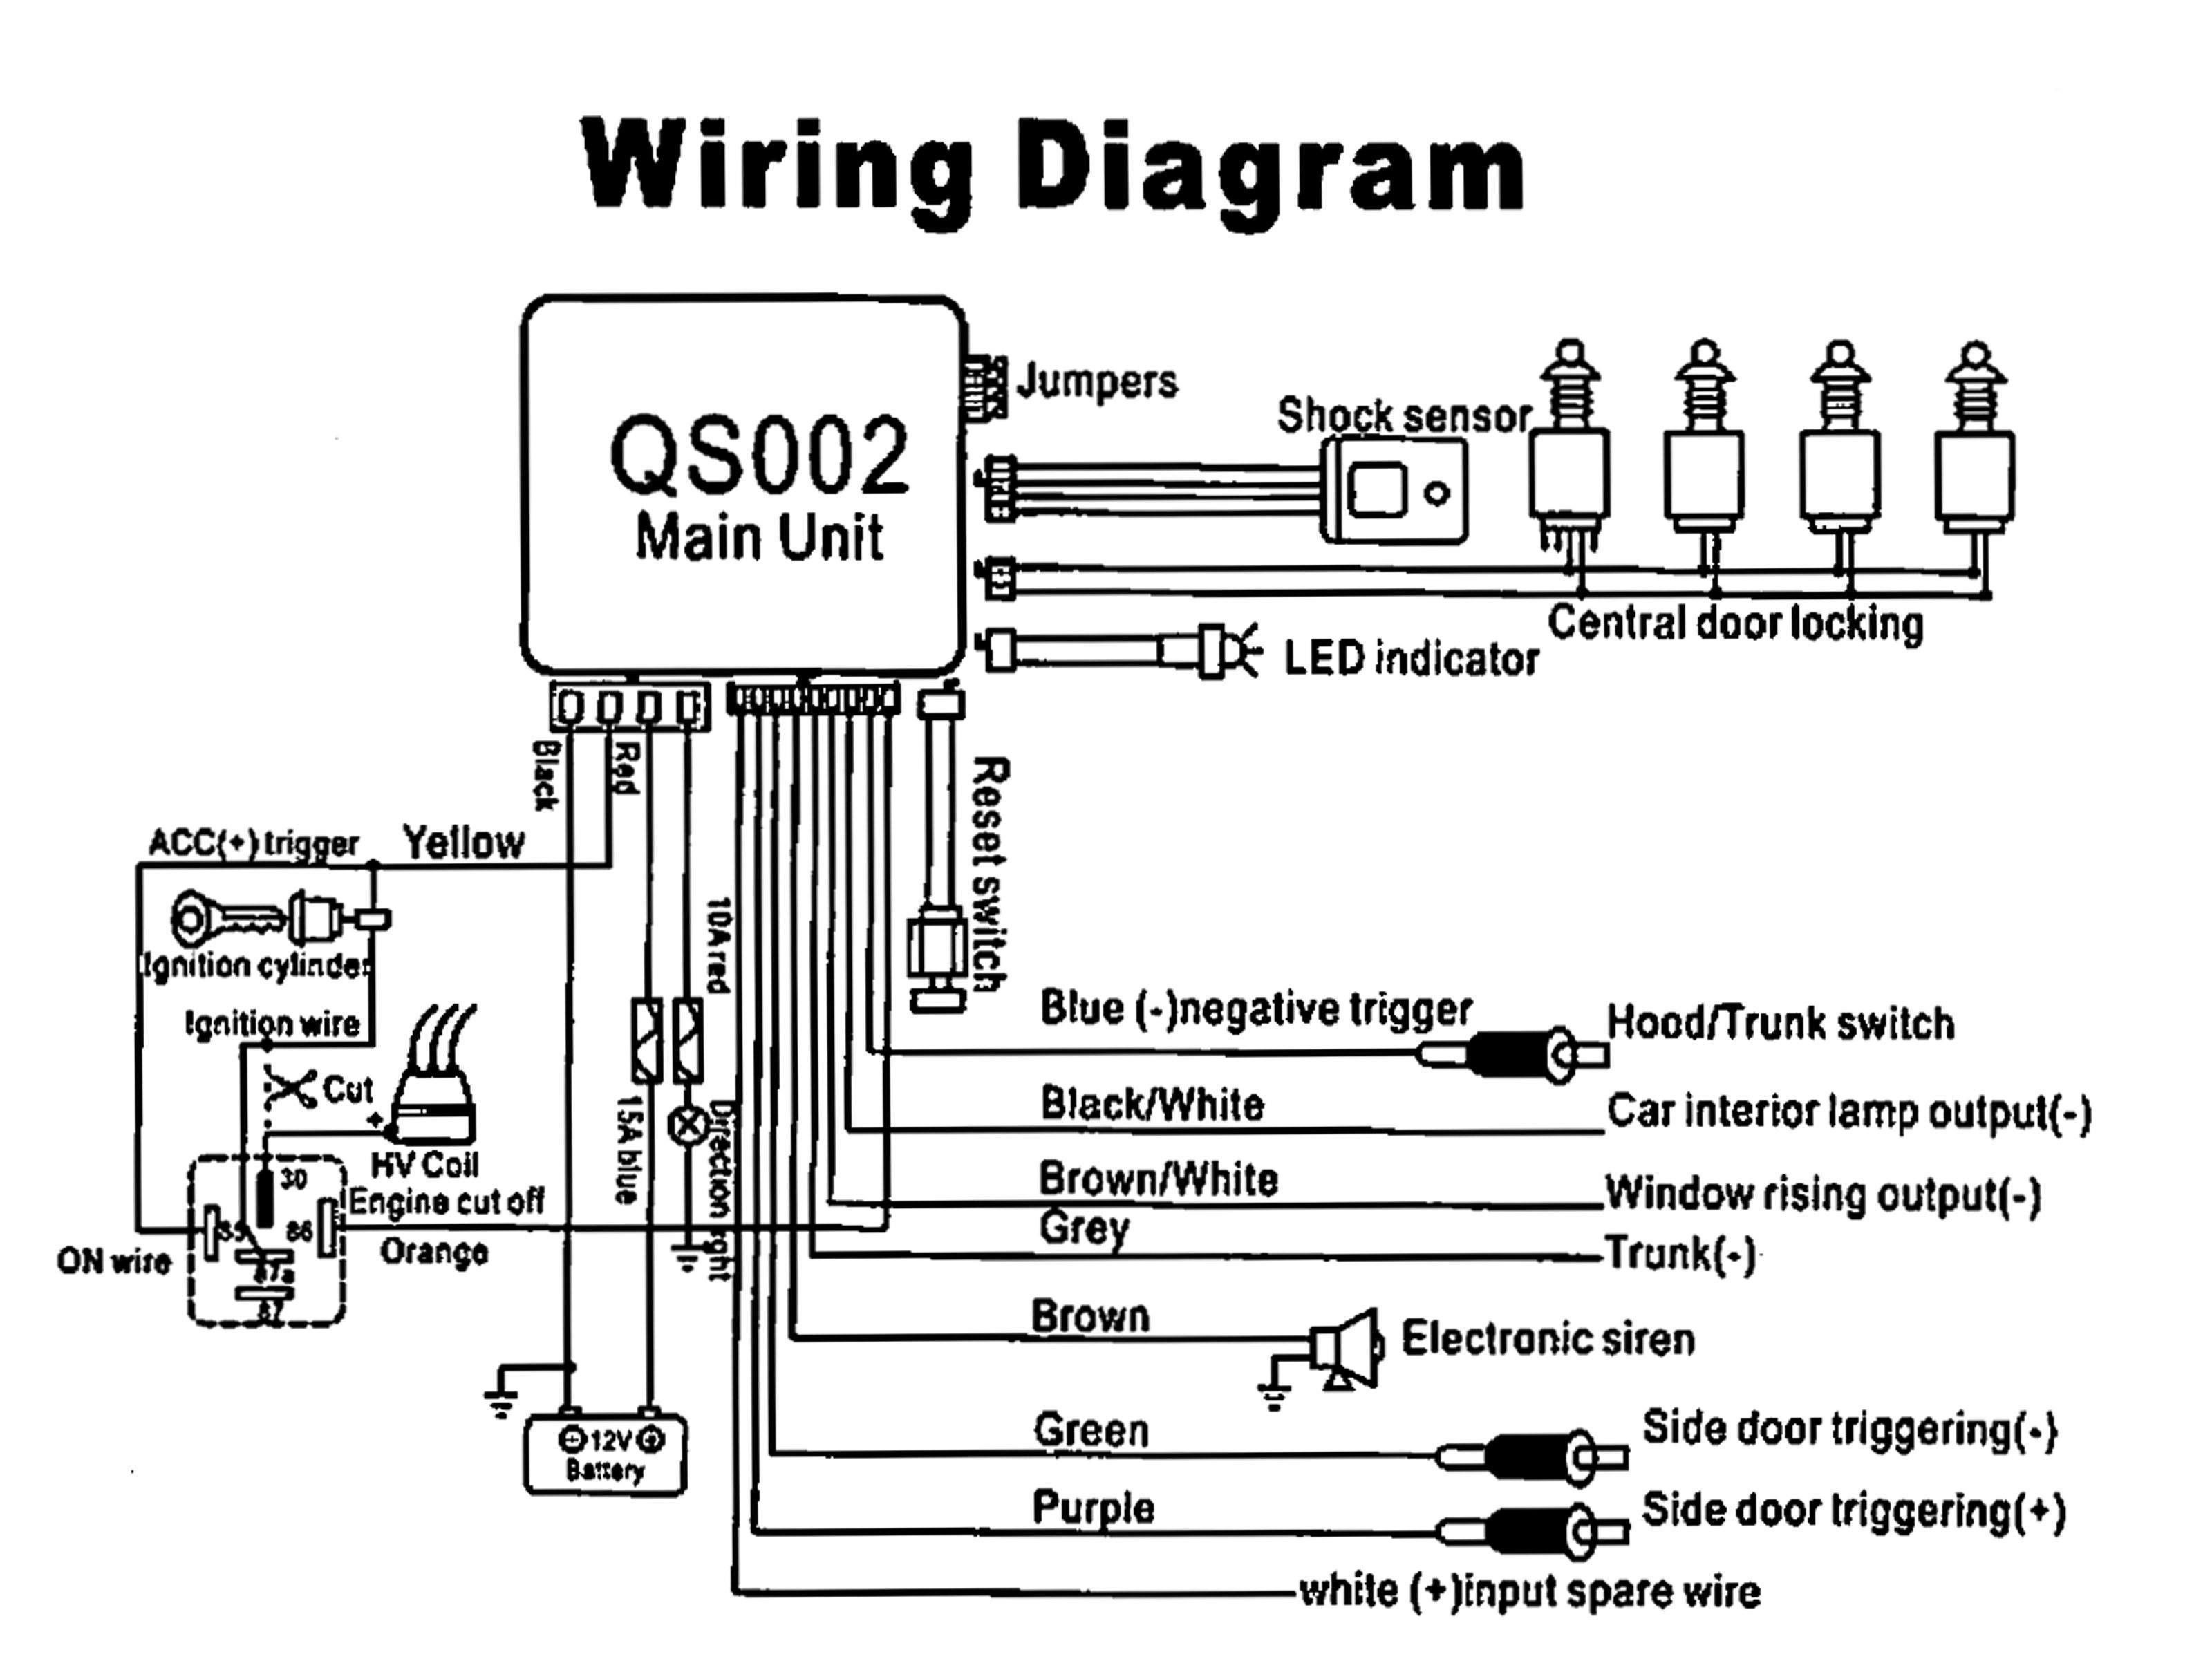 Inspirational Vehicle Wiring Diagram App Diagrams Digramssample